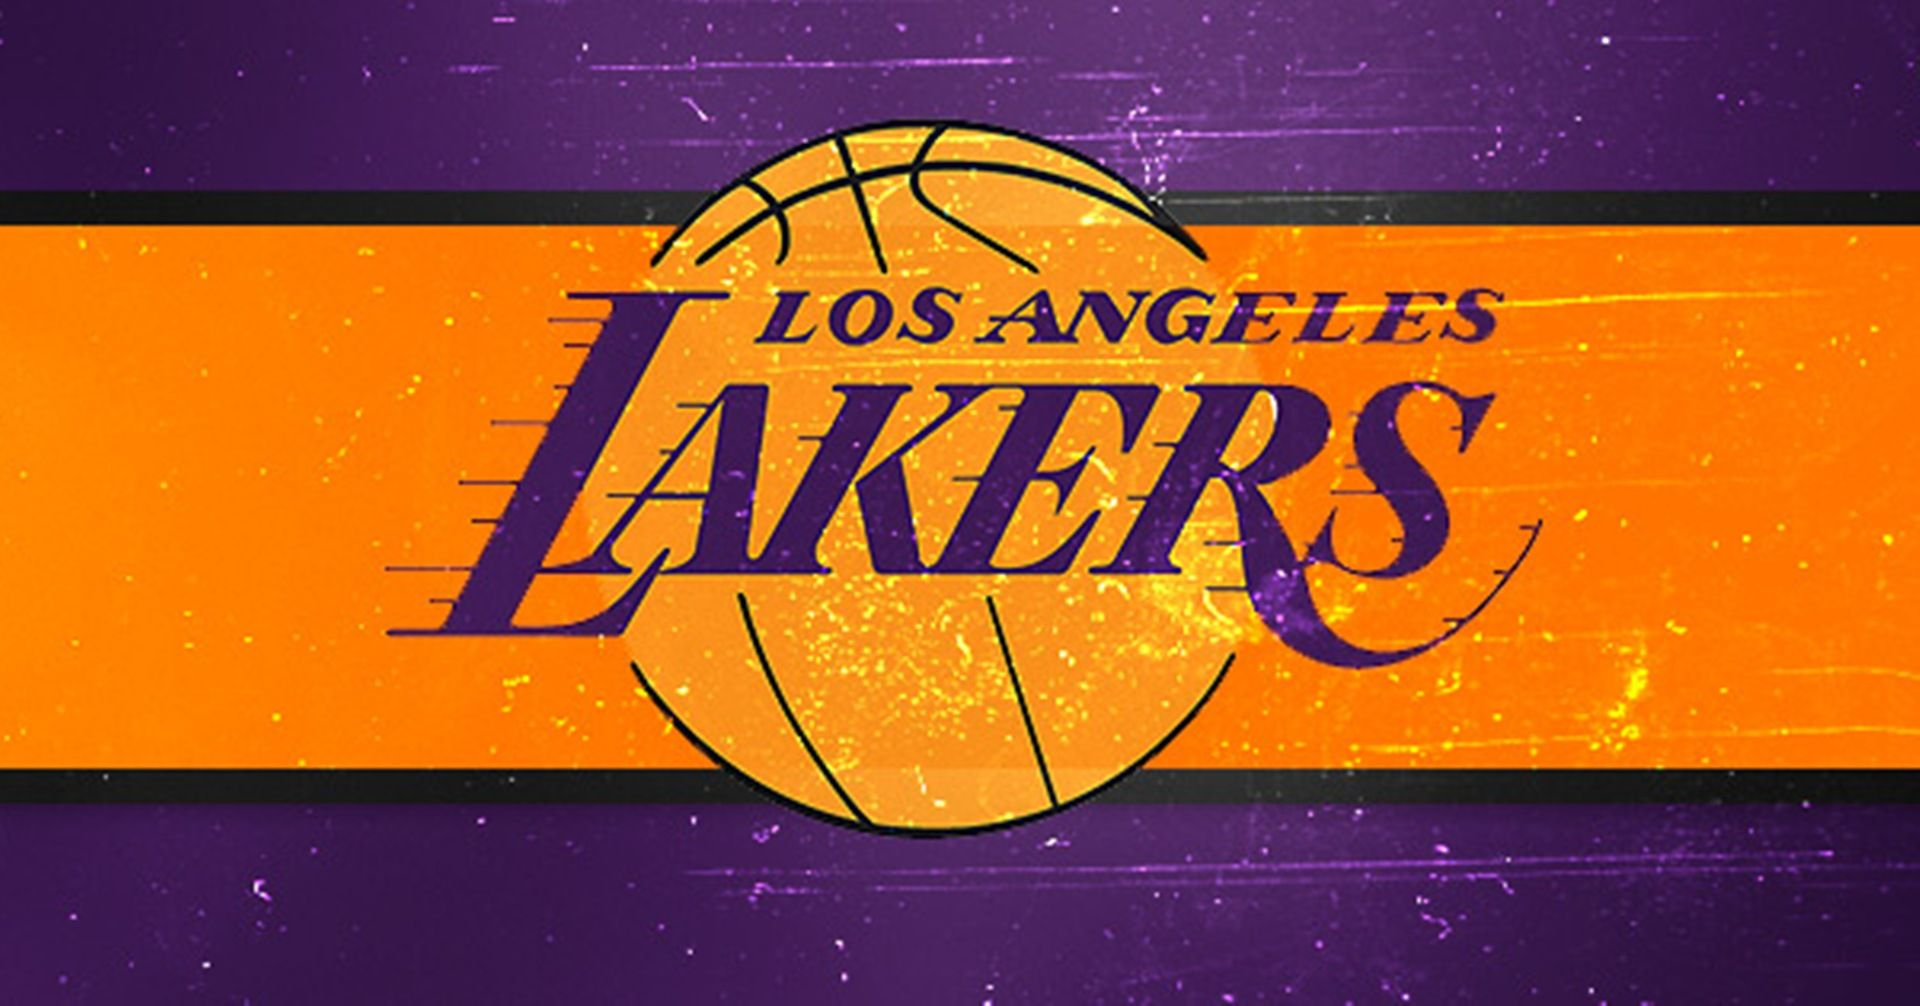 Lakers Basketball Wallpaper Live Wallpaper Hd Lakers Wallpaper Lakers Lakers Basketball